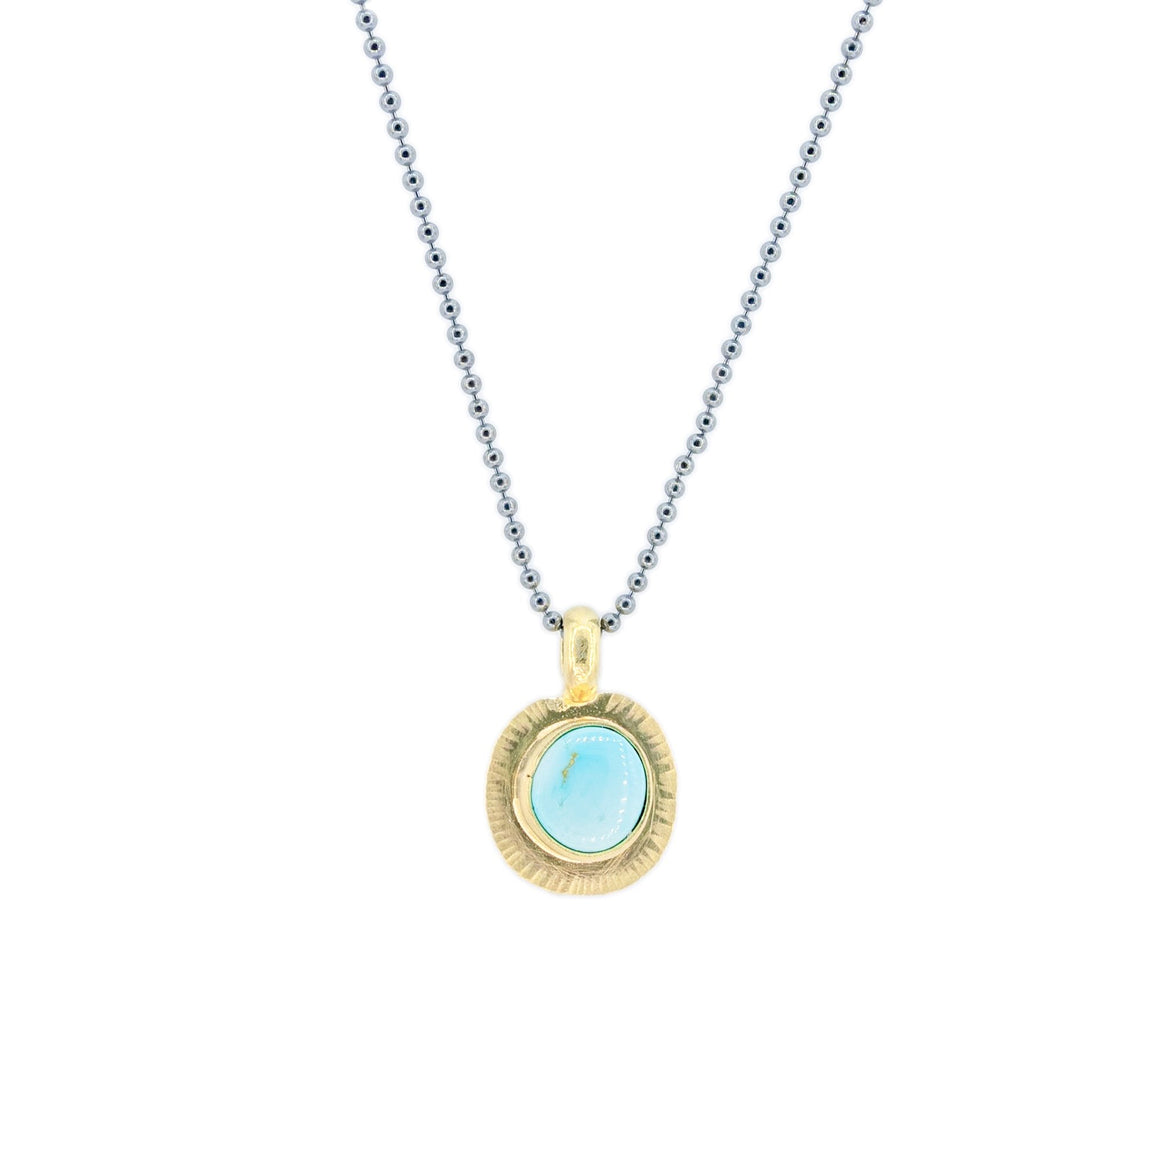 Blue Moon Necklace in 18k Gold by Original Sin Jewelry